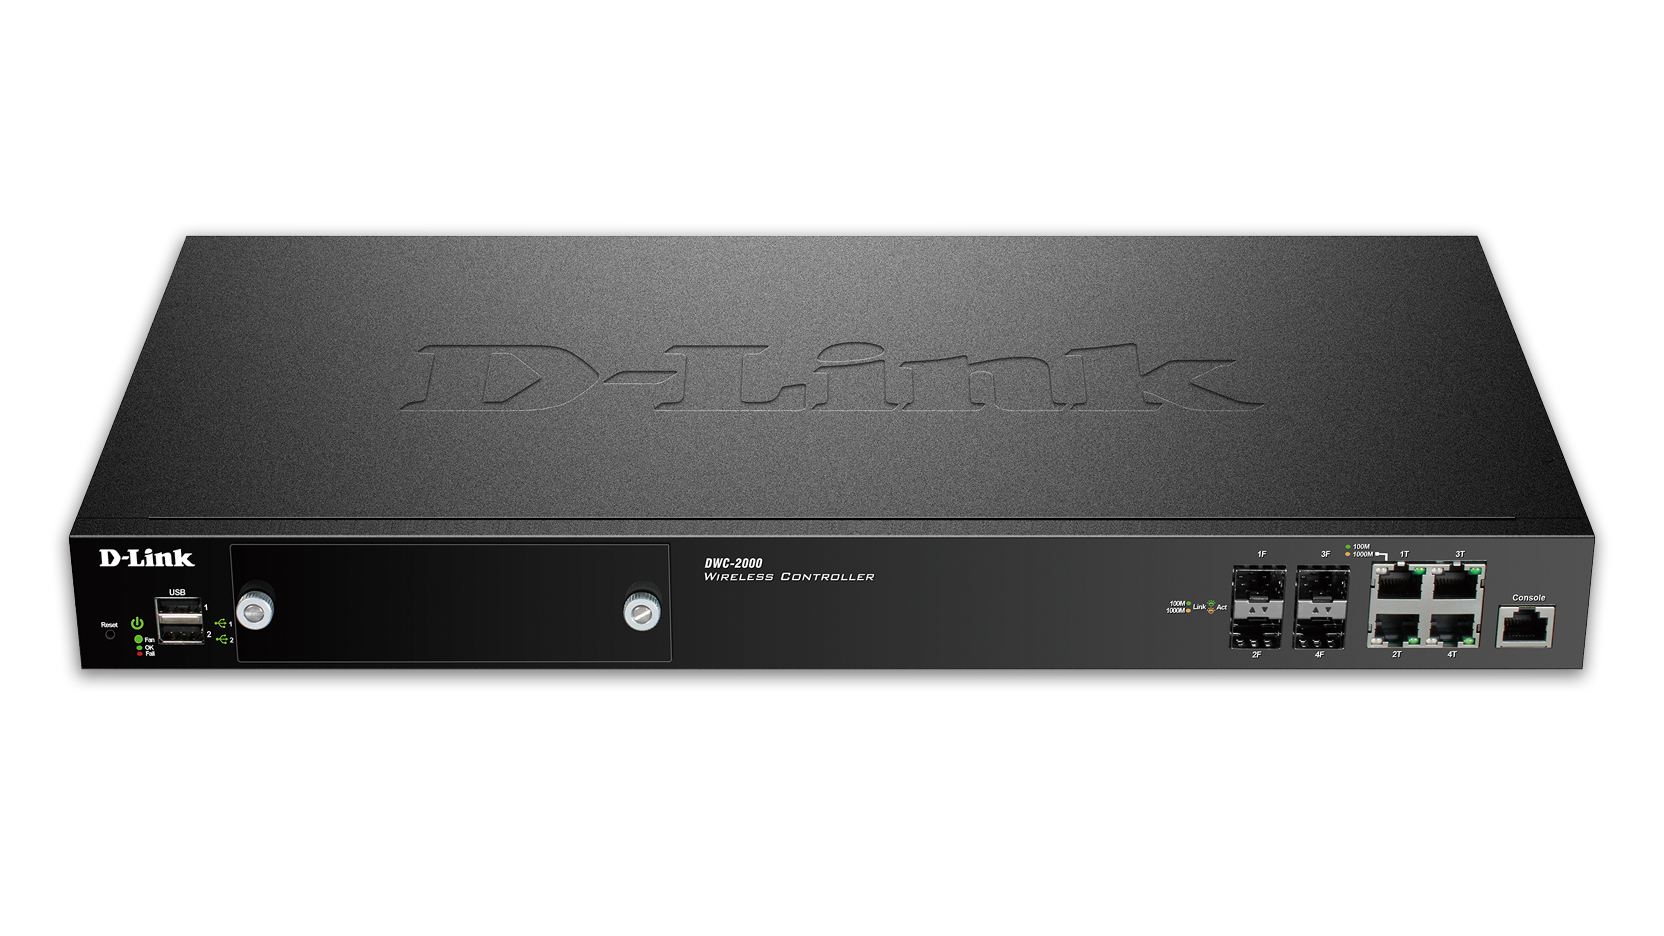 D-Link - D-Link DWC-2000 Wireless Controller - Network management device - 4 ports - 64 MAPs (managed access points) - 10Mb LAN, 100Mb LAN, GigE - 1U